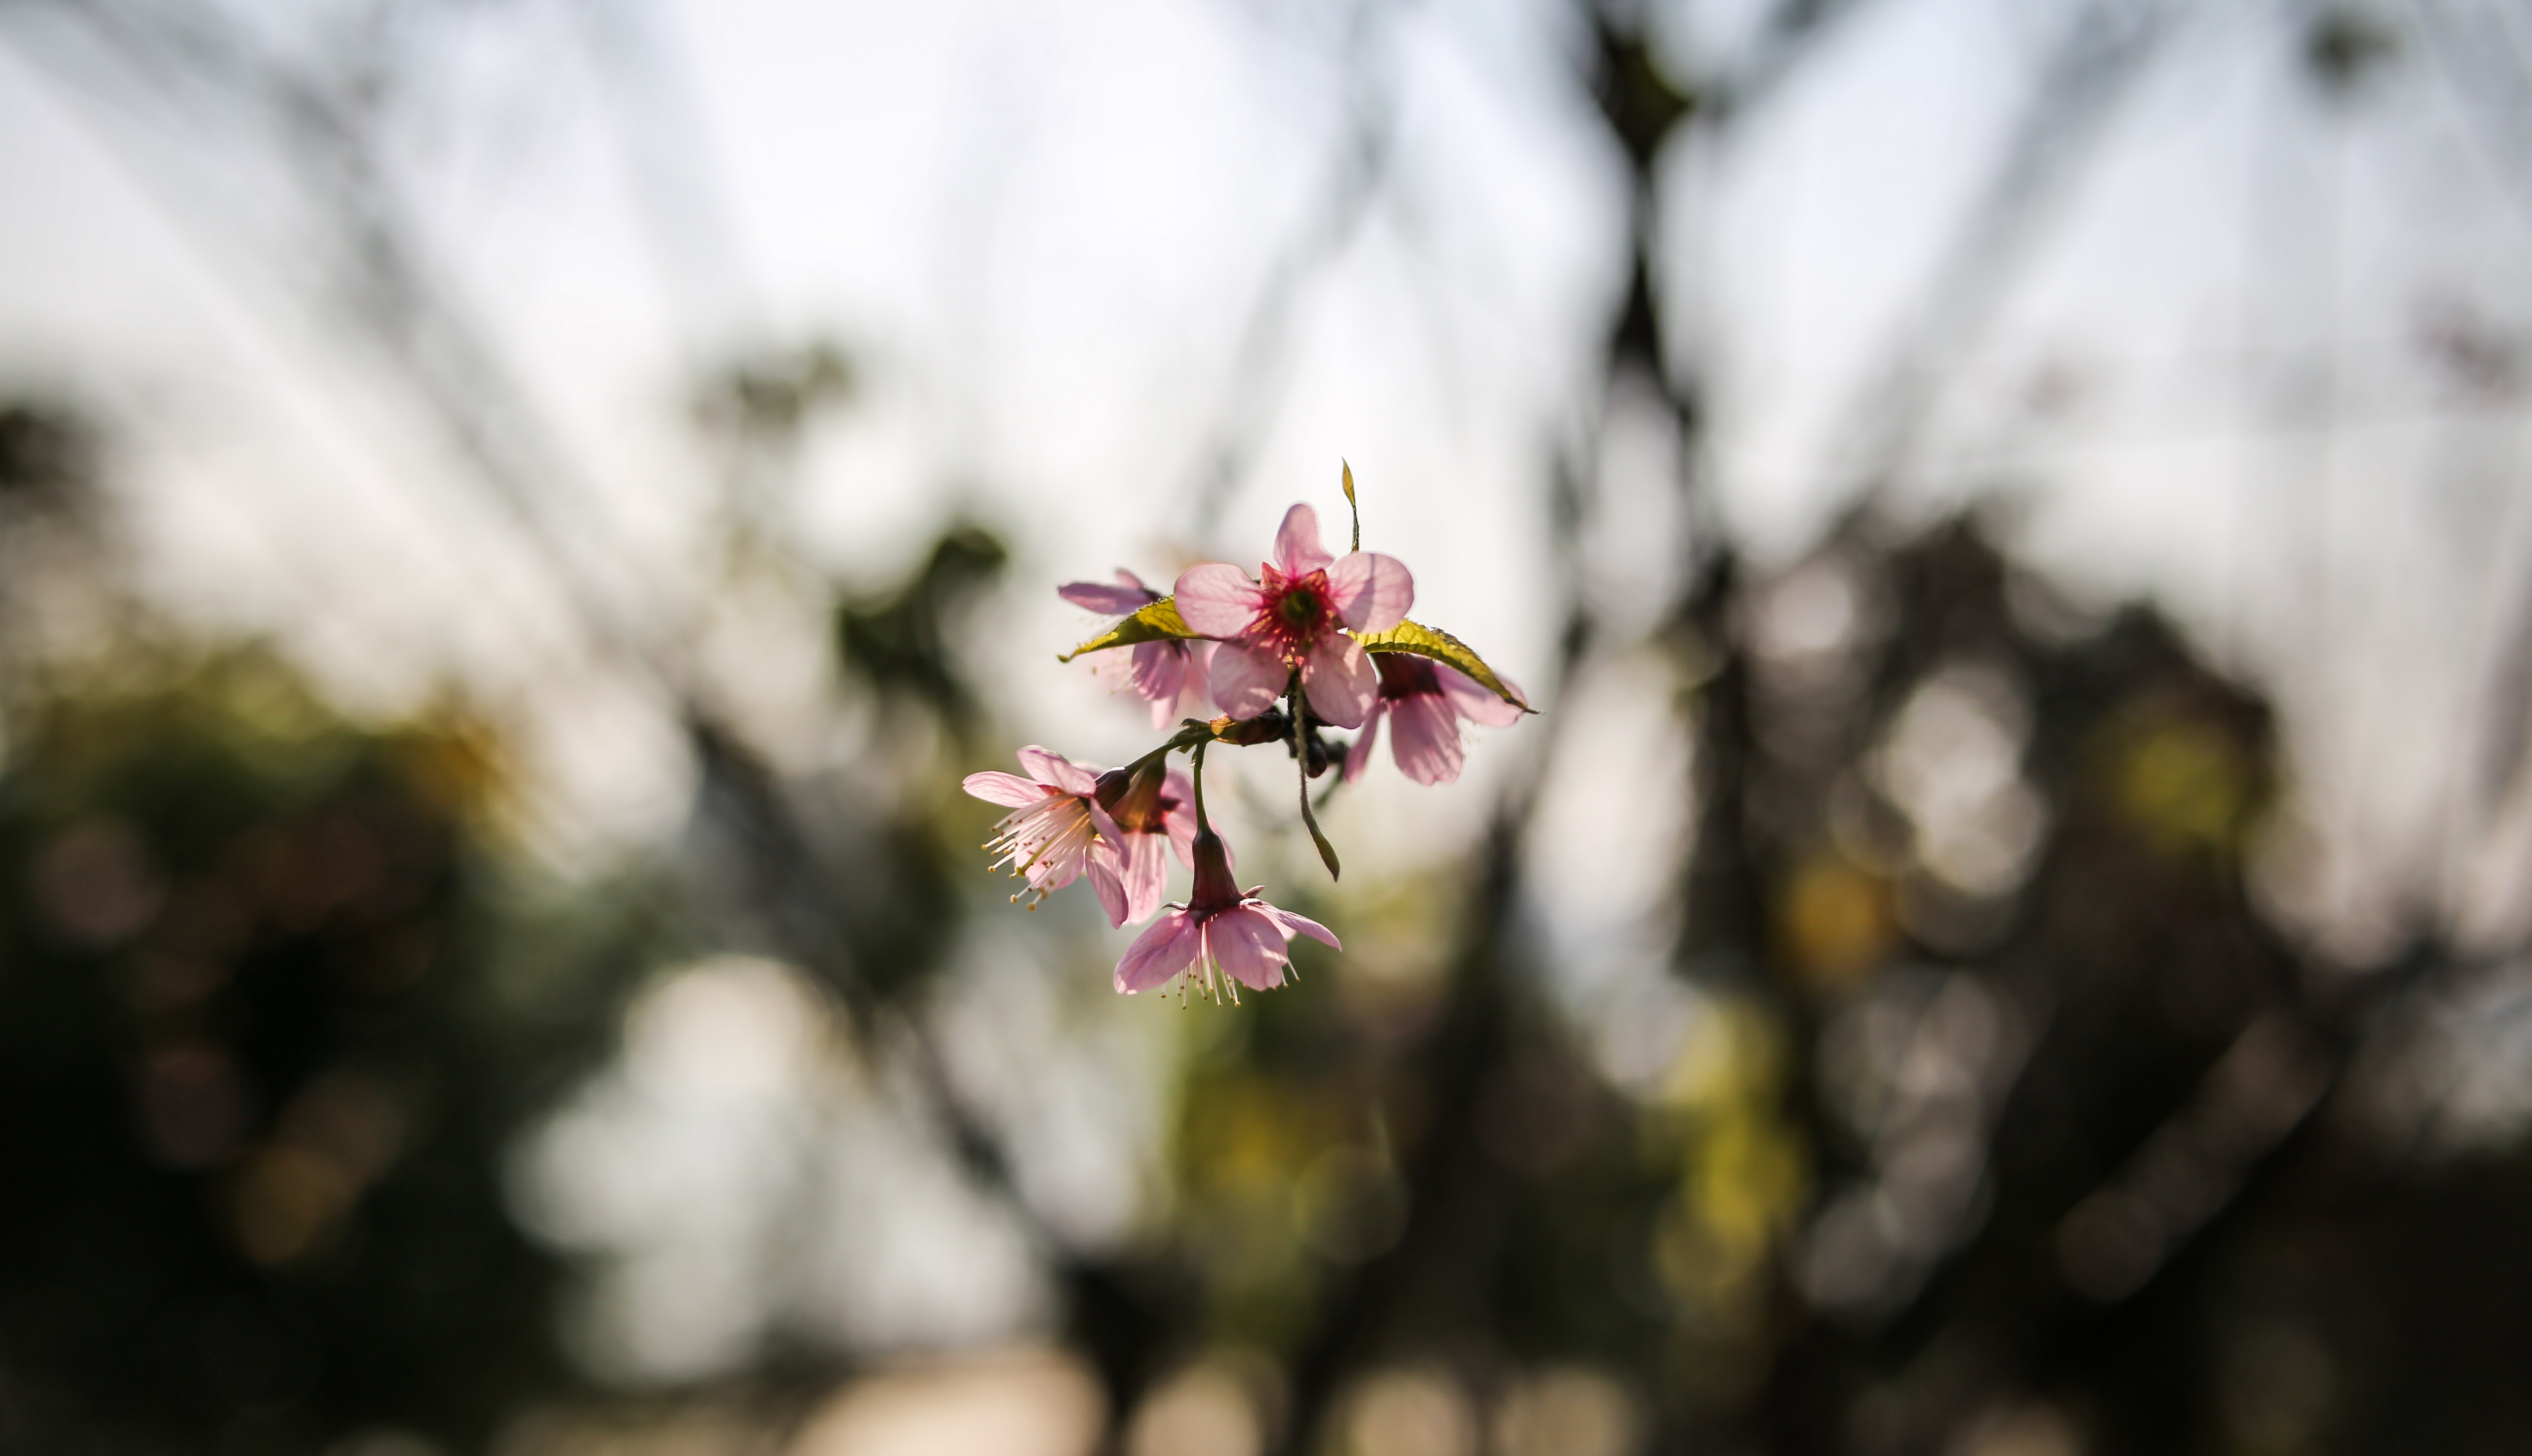 Close-up of a small branchlet of pink blossom